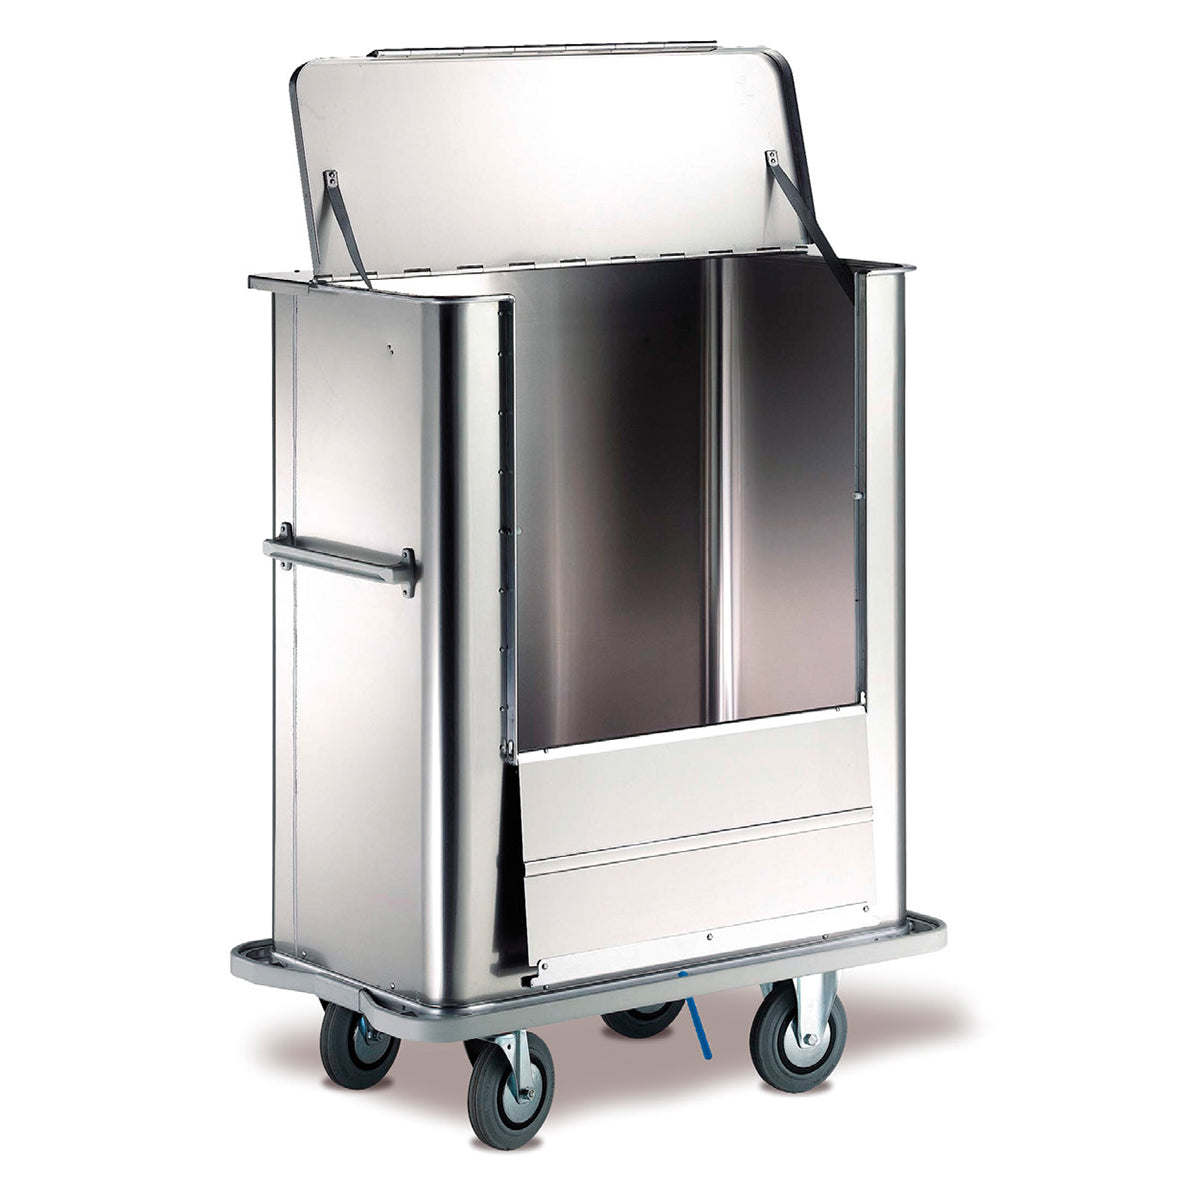 Missouri 690/1050 Laundry & Cleaning Trolley